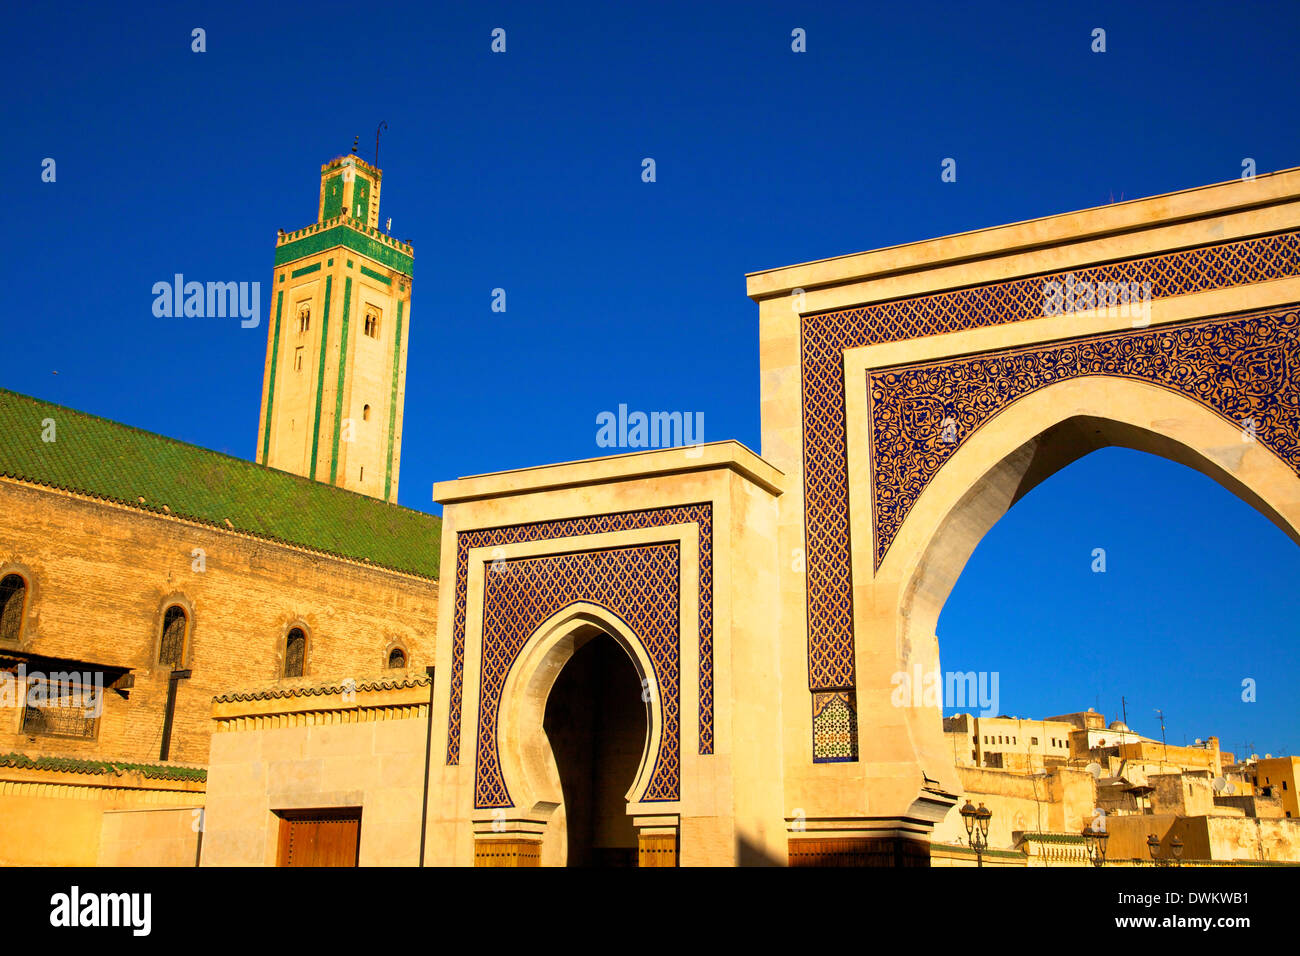 Mosque R'Cif, R'Cif Square (Place Er-Rsif), Fez, Morocco, North Africa, Africa - Stock Image